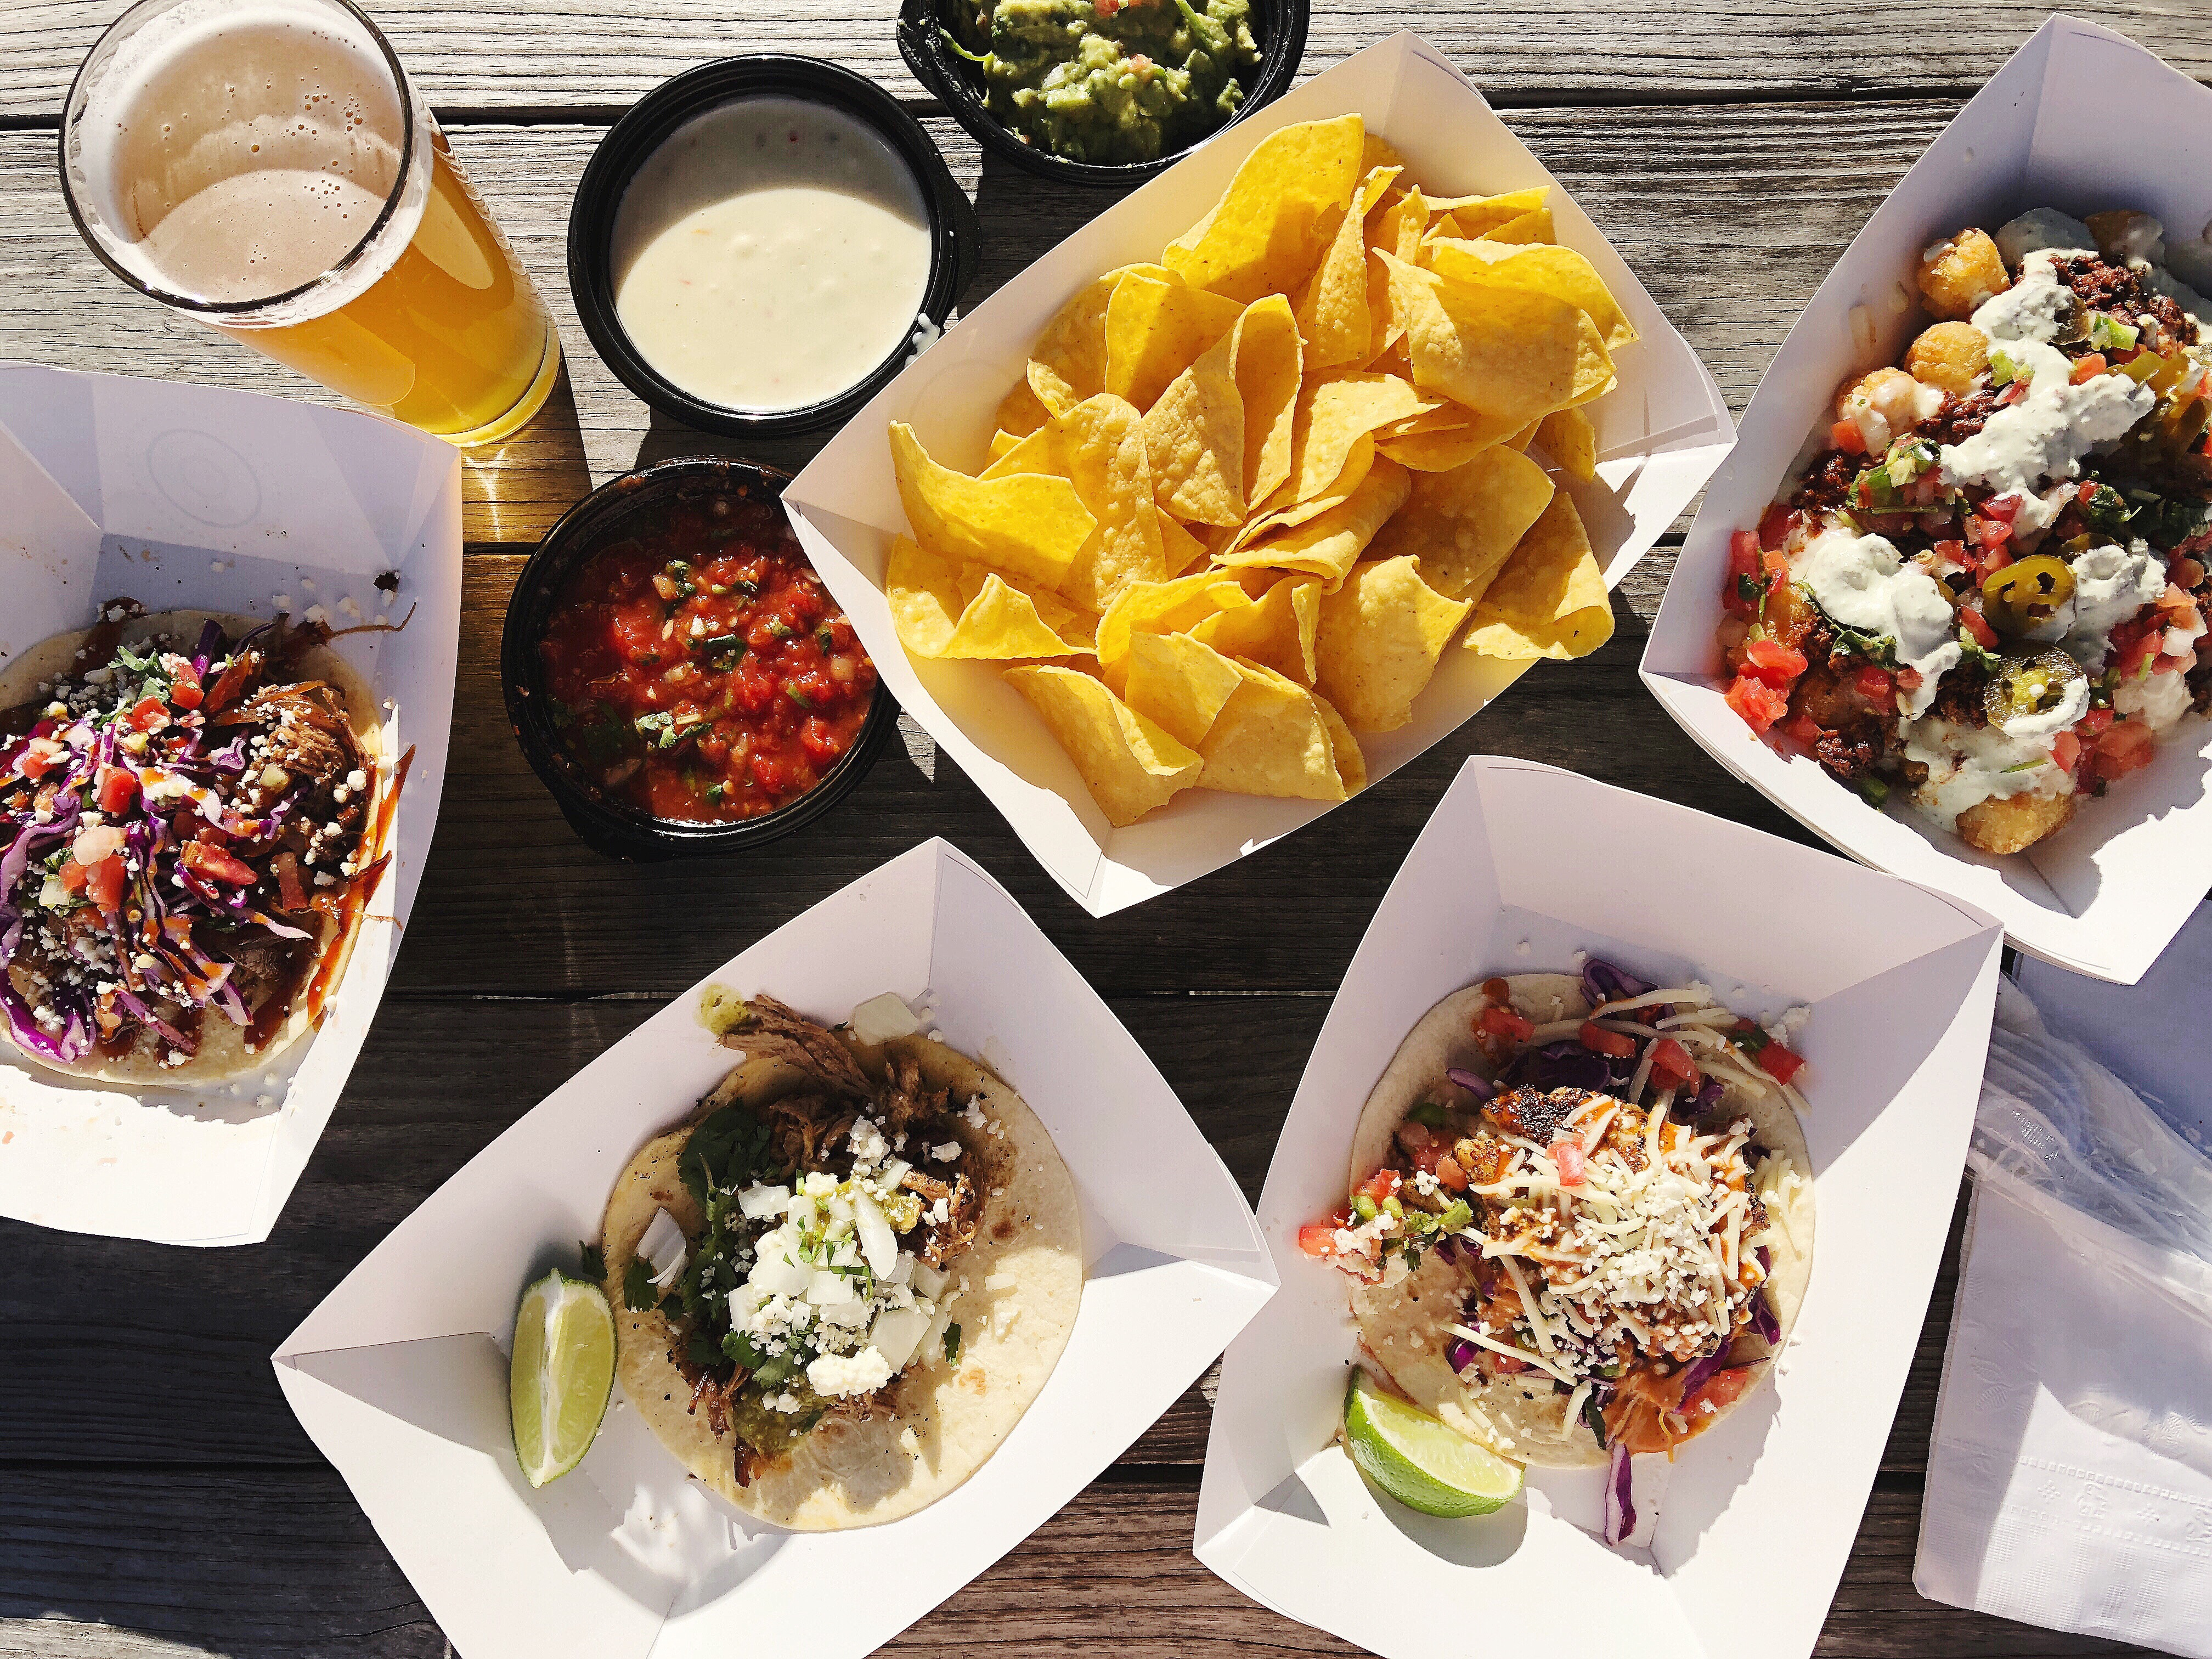 Short Rib, Pork & Fish Tacos, Tachos, a Dip Trio of Guacamole, Queso and Salsa